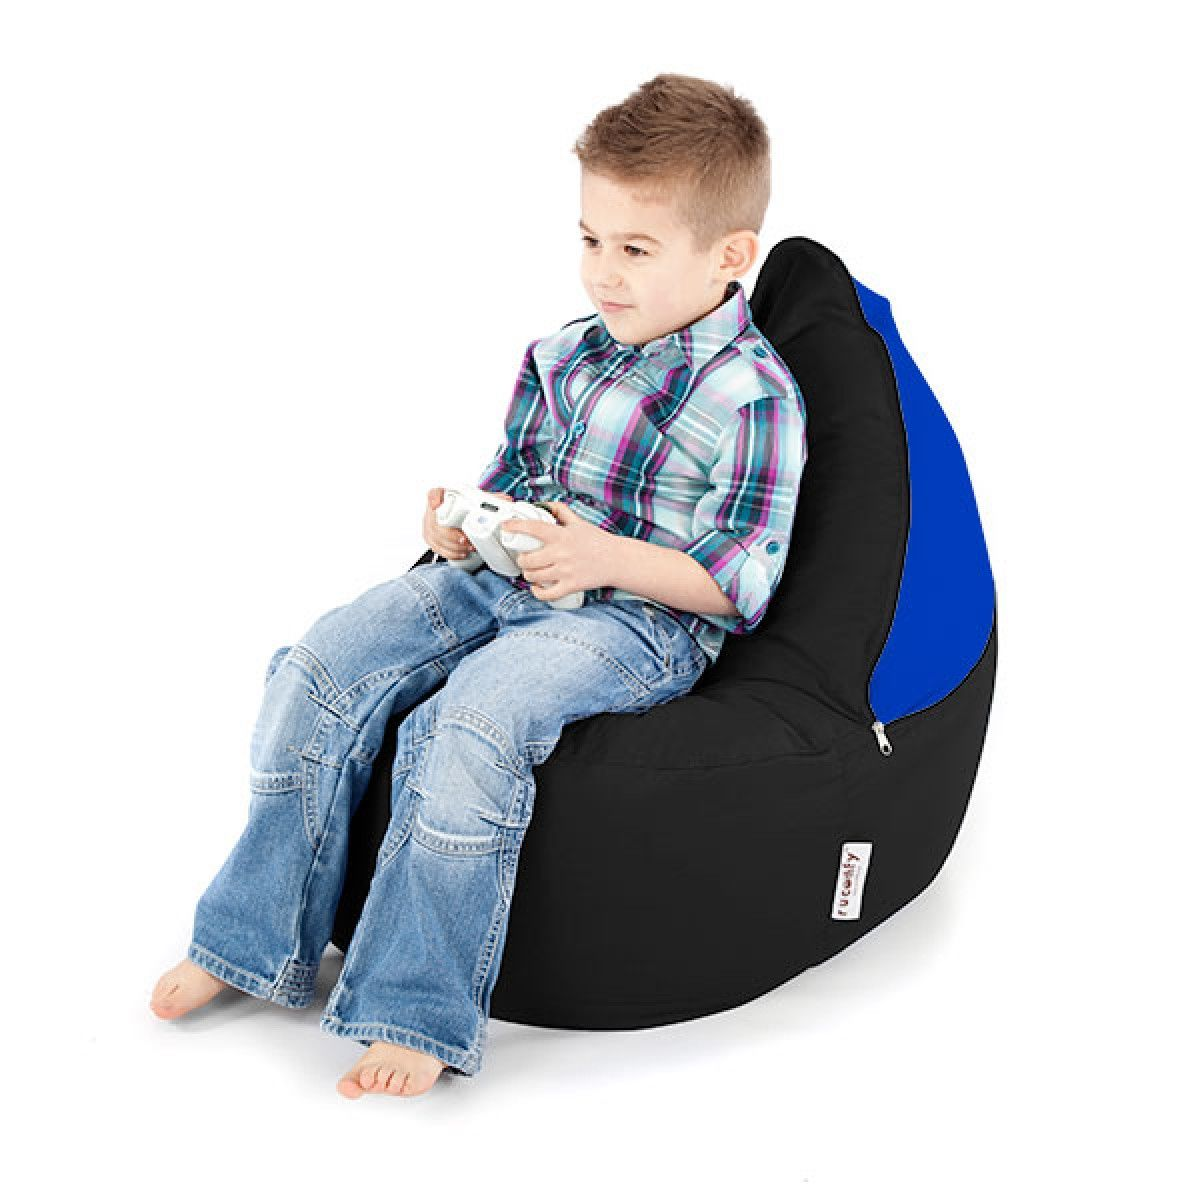 Gaming Chairs For Kids Kids Chairs Chair Game Room Chairs